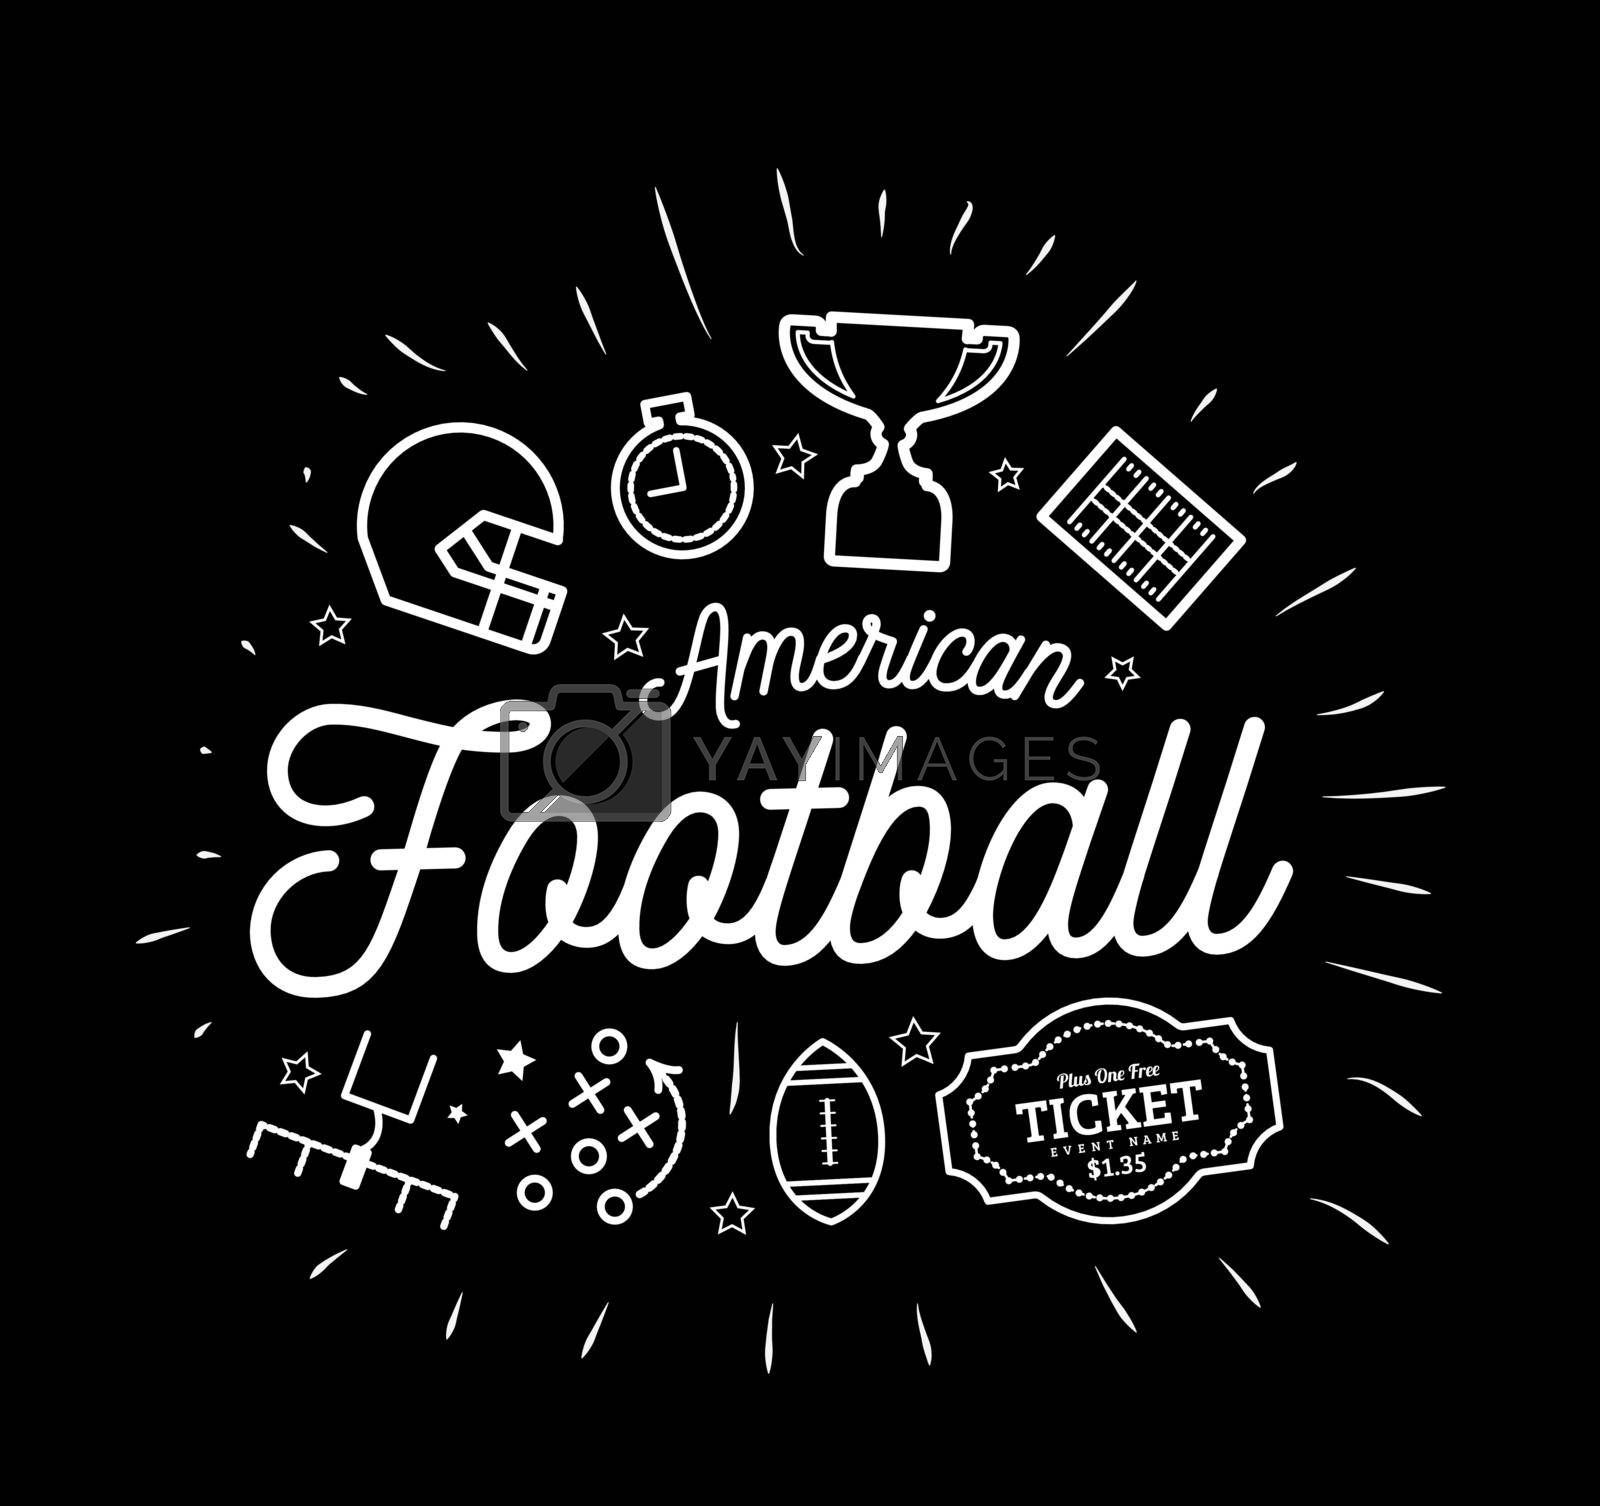 American football. Vector illustration in the style of thin lines with flat icons in black and white on black background